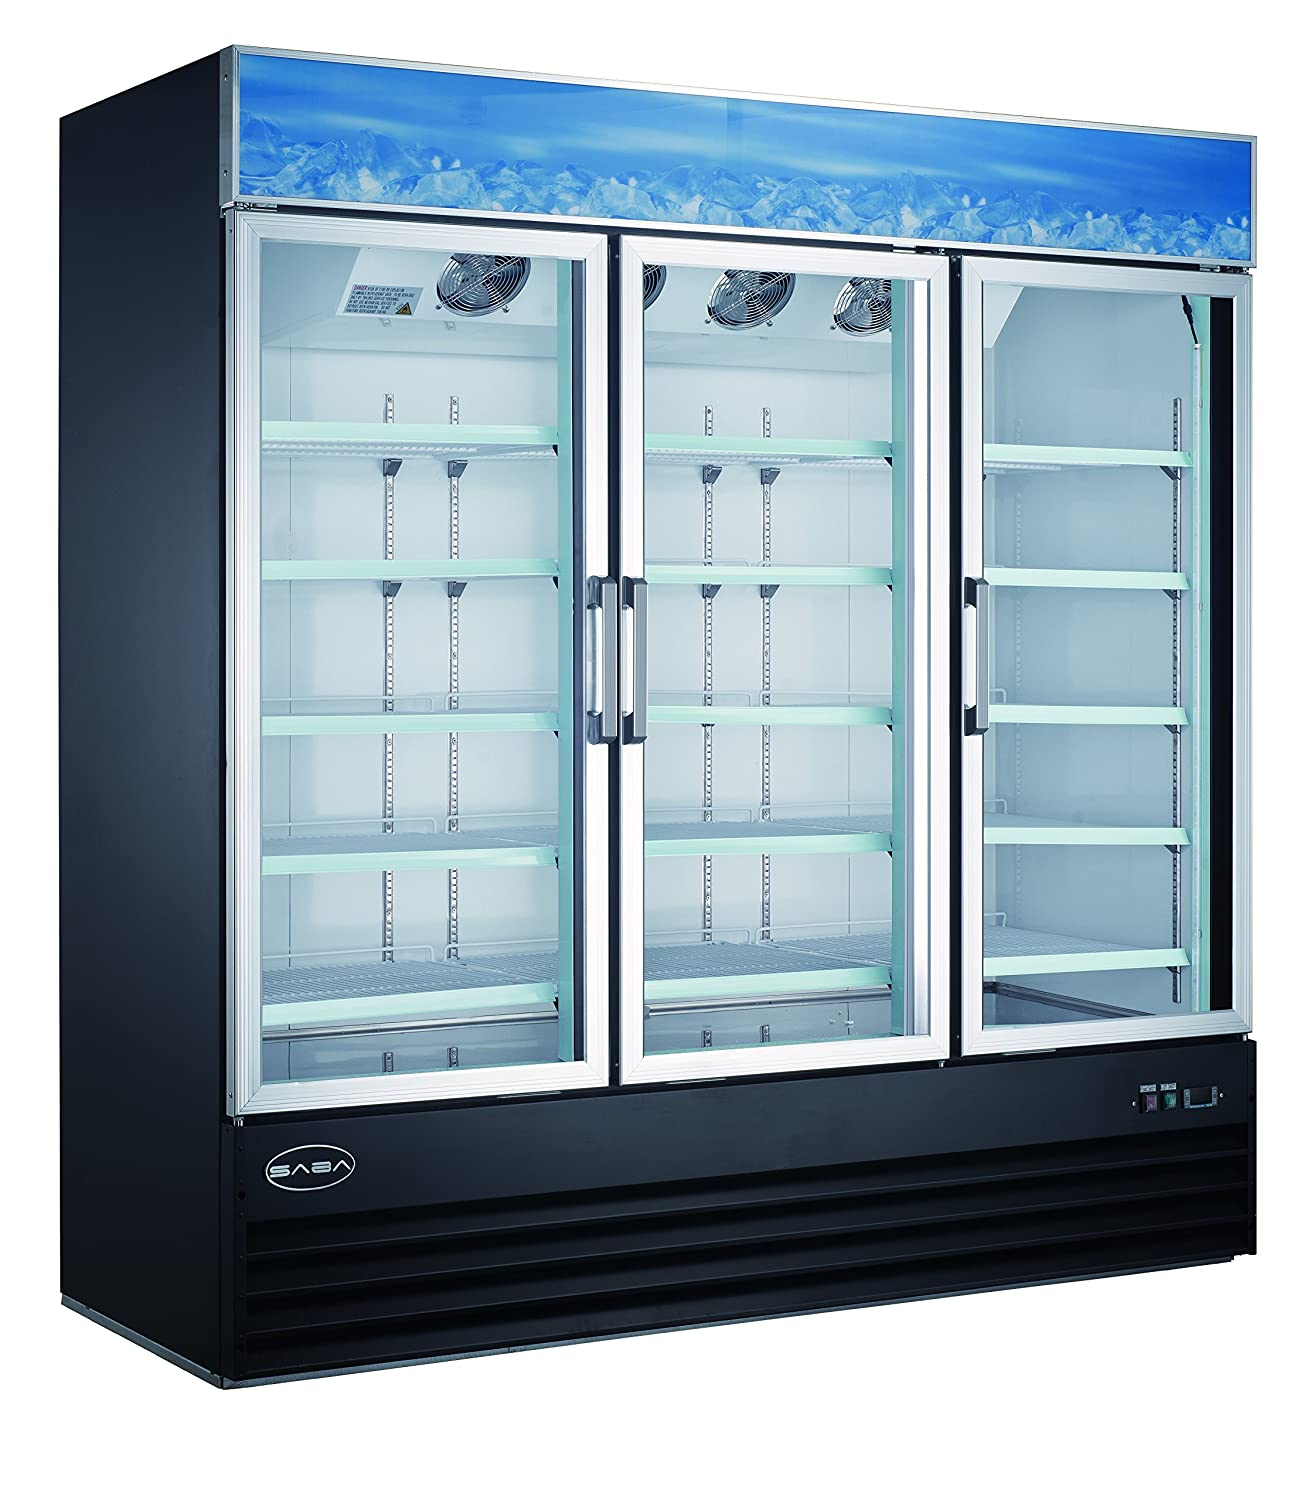 Saba Air SGDM72F Three Door Merchandiser Freezer SM-72F